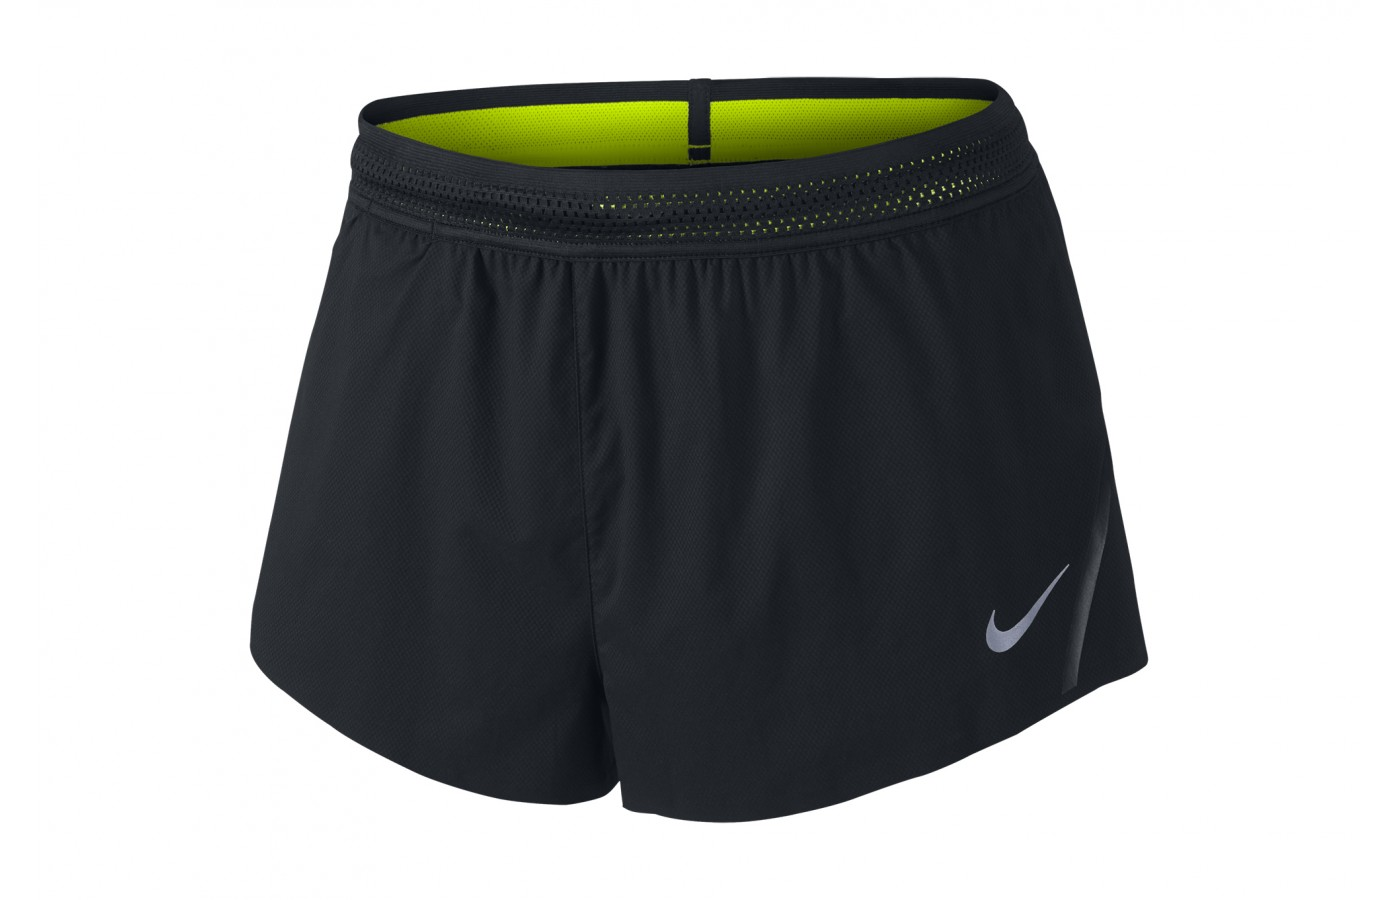 The Nike Aeroswift has a visibly perforated waistband for cooling.